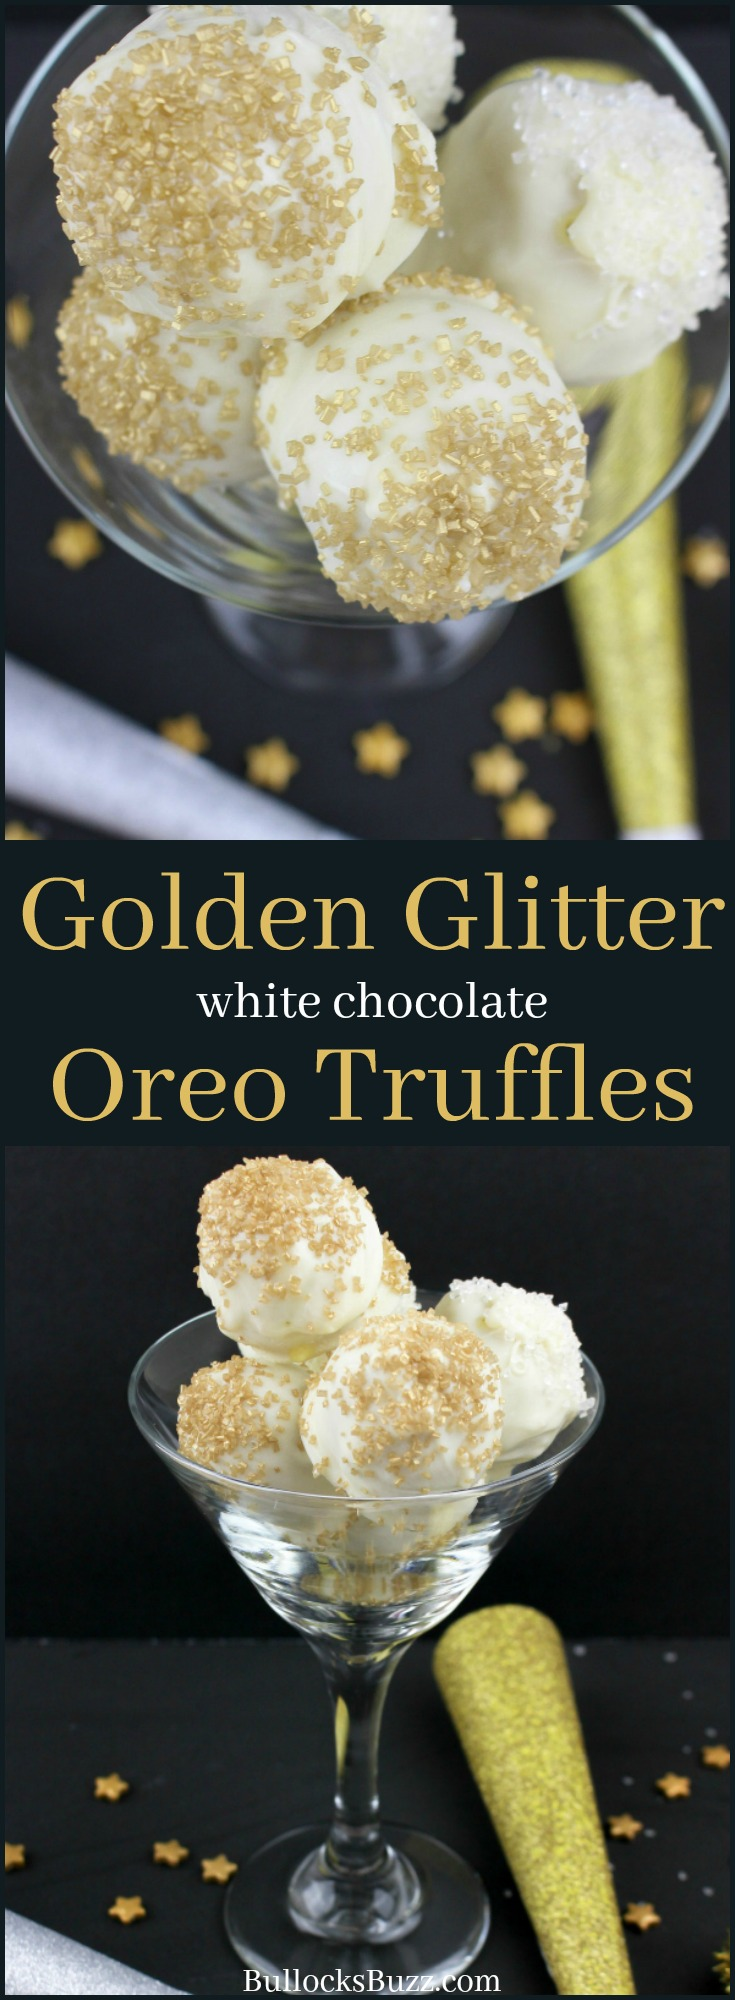 These Golden Glitter White Chocolate Oreo Truffles are delicious, easy to make, and shimmer like the Times Square Ball!